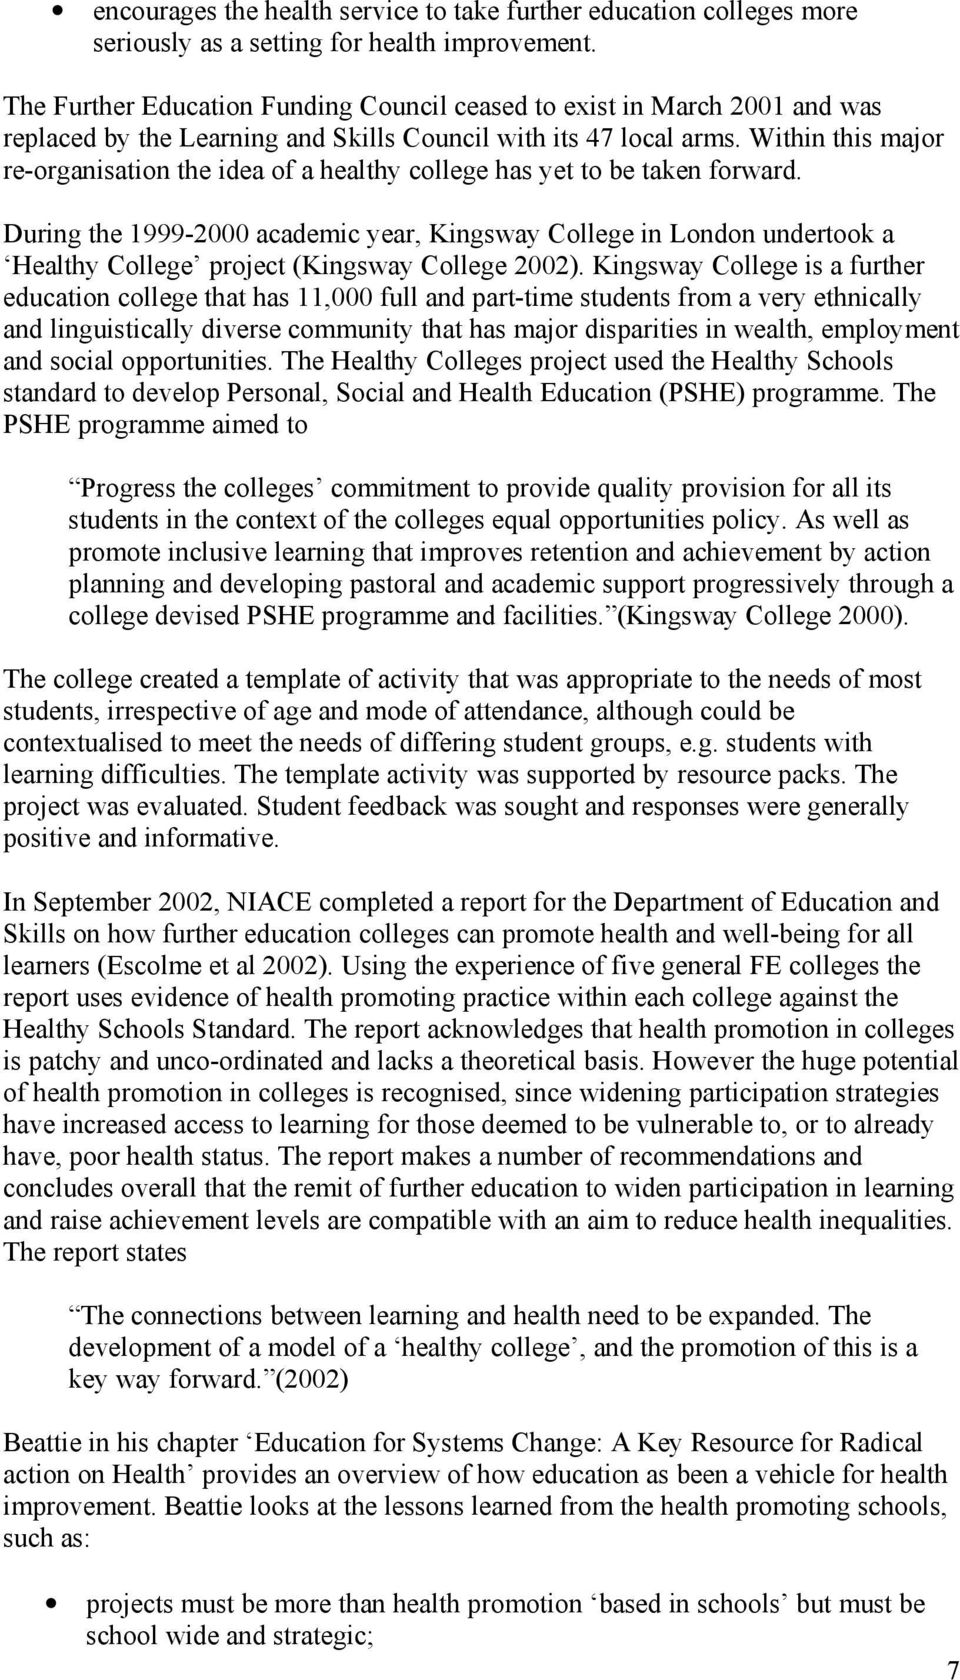 Within this major re-organisation the idea of a healthy college has yet to be taken forward.